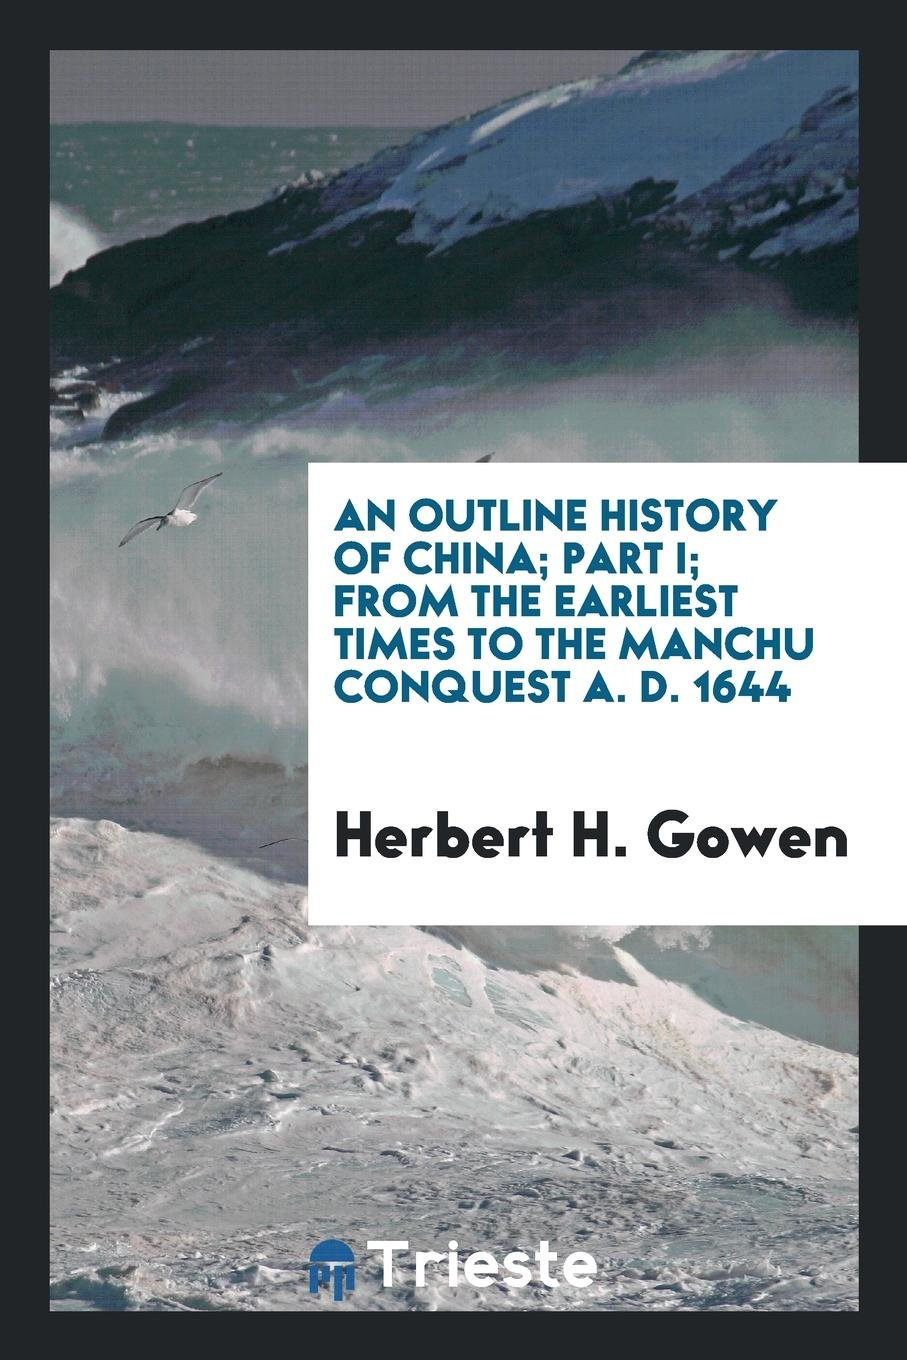 An outline history of China; Part I; From the earliest times to the manchu conquest A. D. 1644 ebook